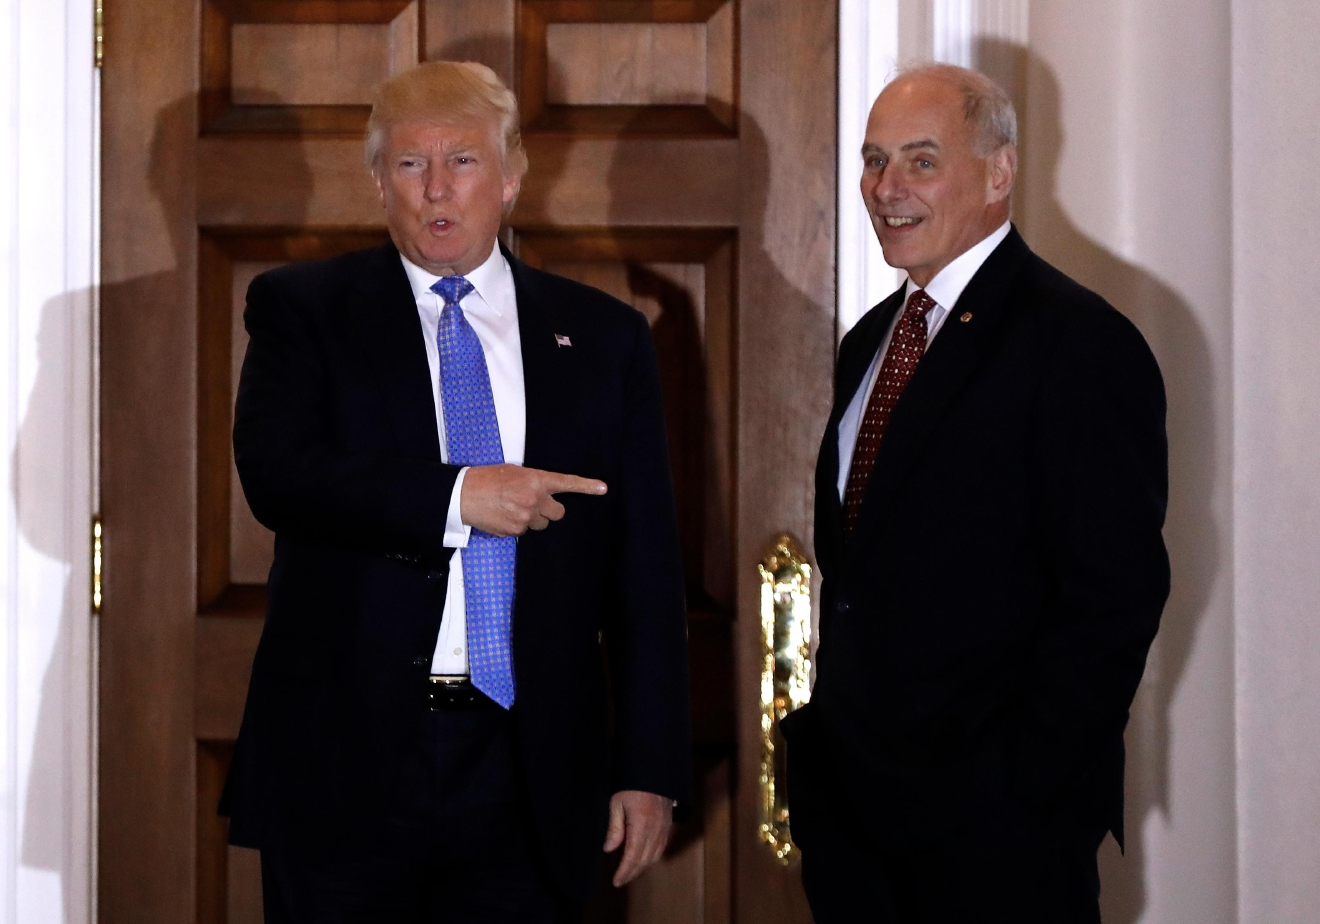 FILE - In this Nov. 20, 2016 file photo, President-elect Donald Trump talks to media as he stands with  retired Marine Gen. John Kelly at the Trump National Golf Club Bedminster clubhouse in Bedminster, N.J. Kelly is likely to be pressed about plans to build a border wall and other steps to boost immigration security at a Senate confirmation hearing on Jan. 10, for President-elect Donald Trump's pick for Homeland Security secretary. (AP Photo/Carolyn Kaster, File)